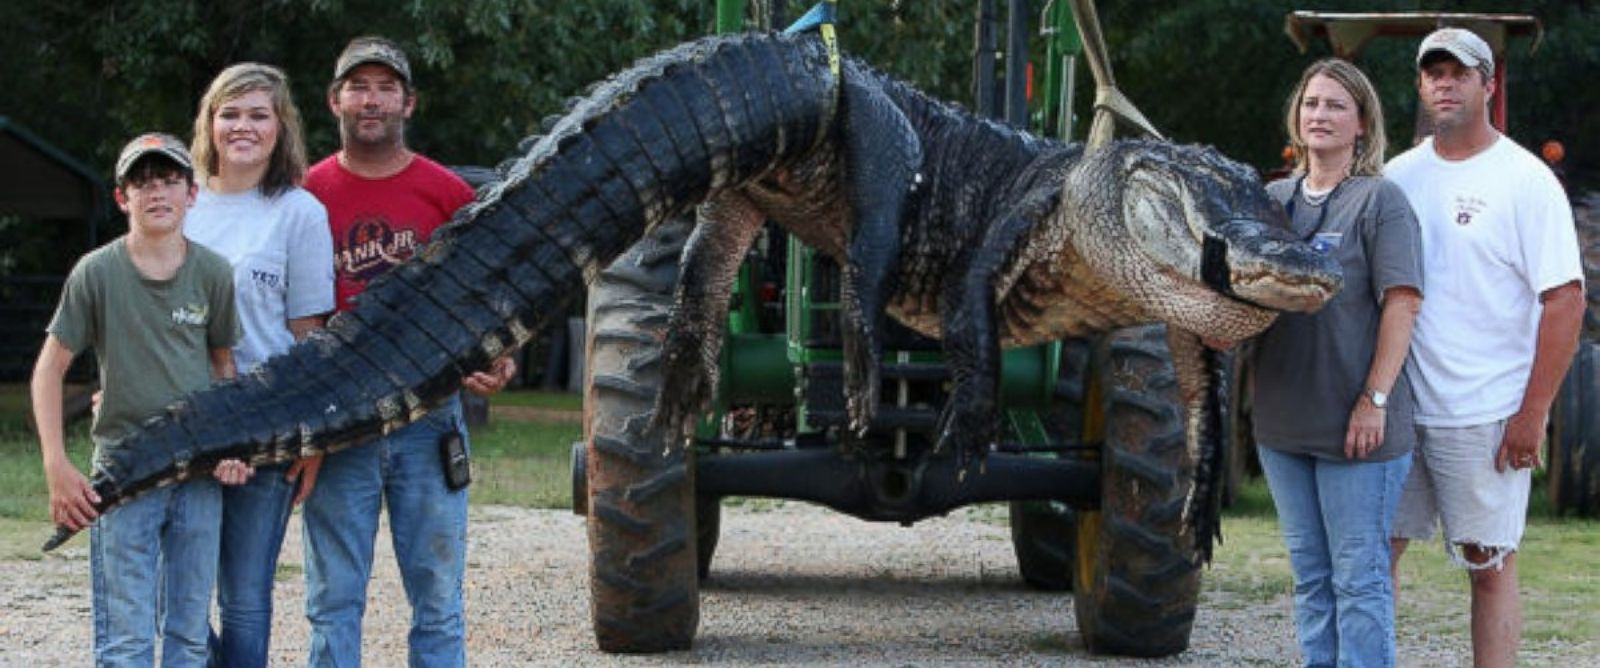 PHOTO: A monster alligator weighing 1011.5 pounds measuring 15 feet long is pictured in Thomaston, Ala. on Aug. 16, 2014.